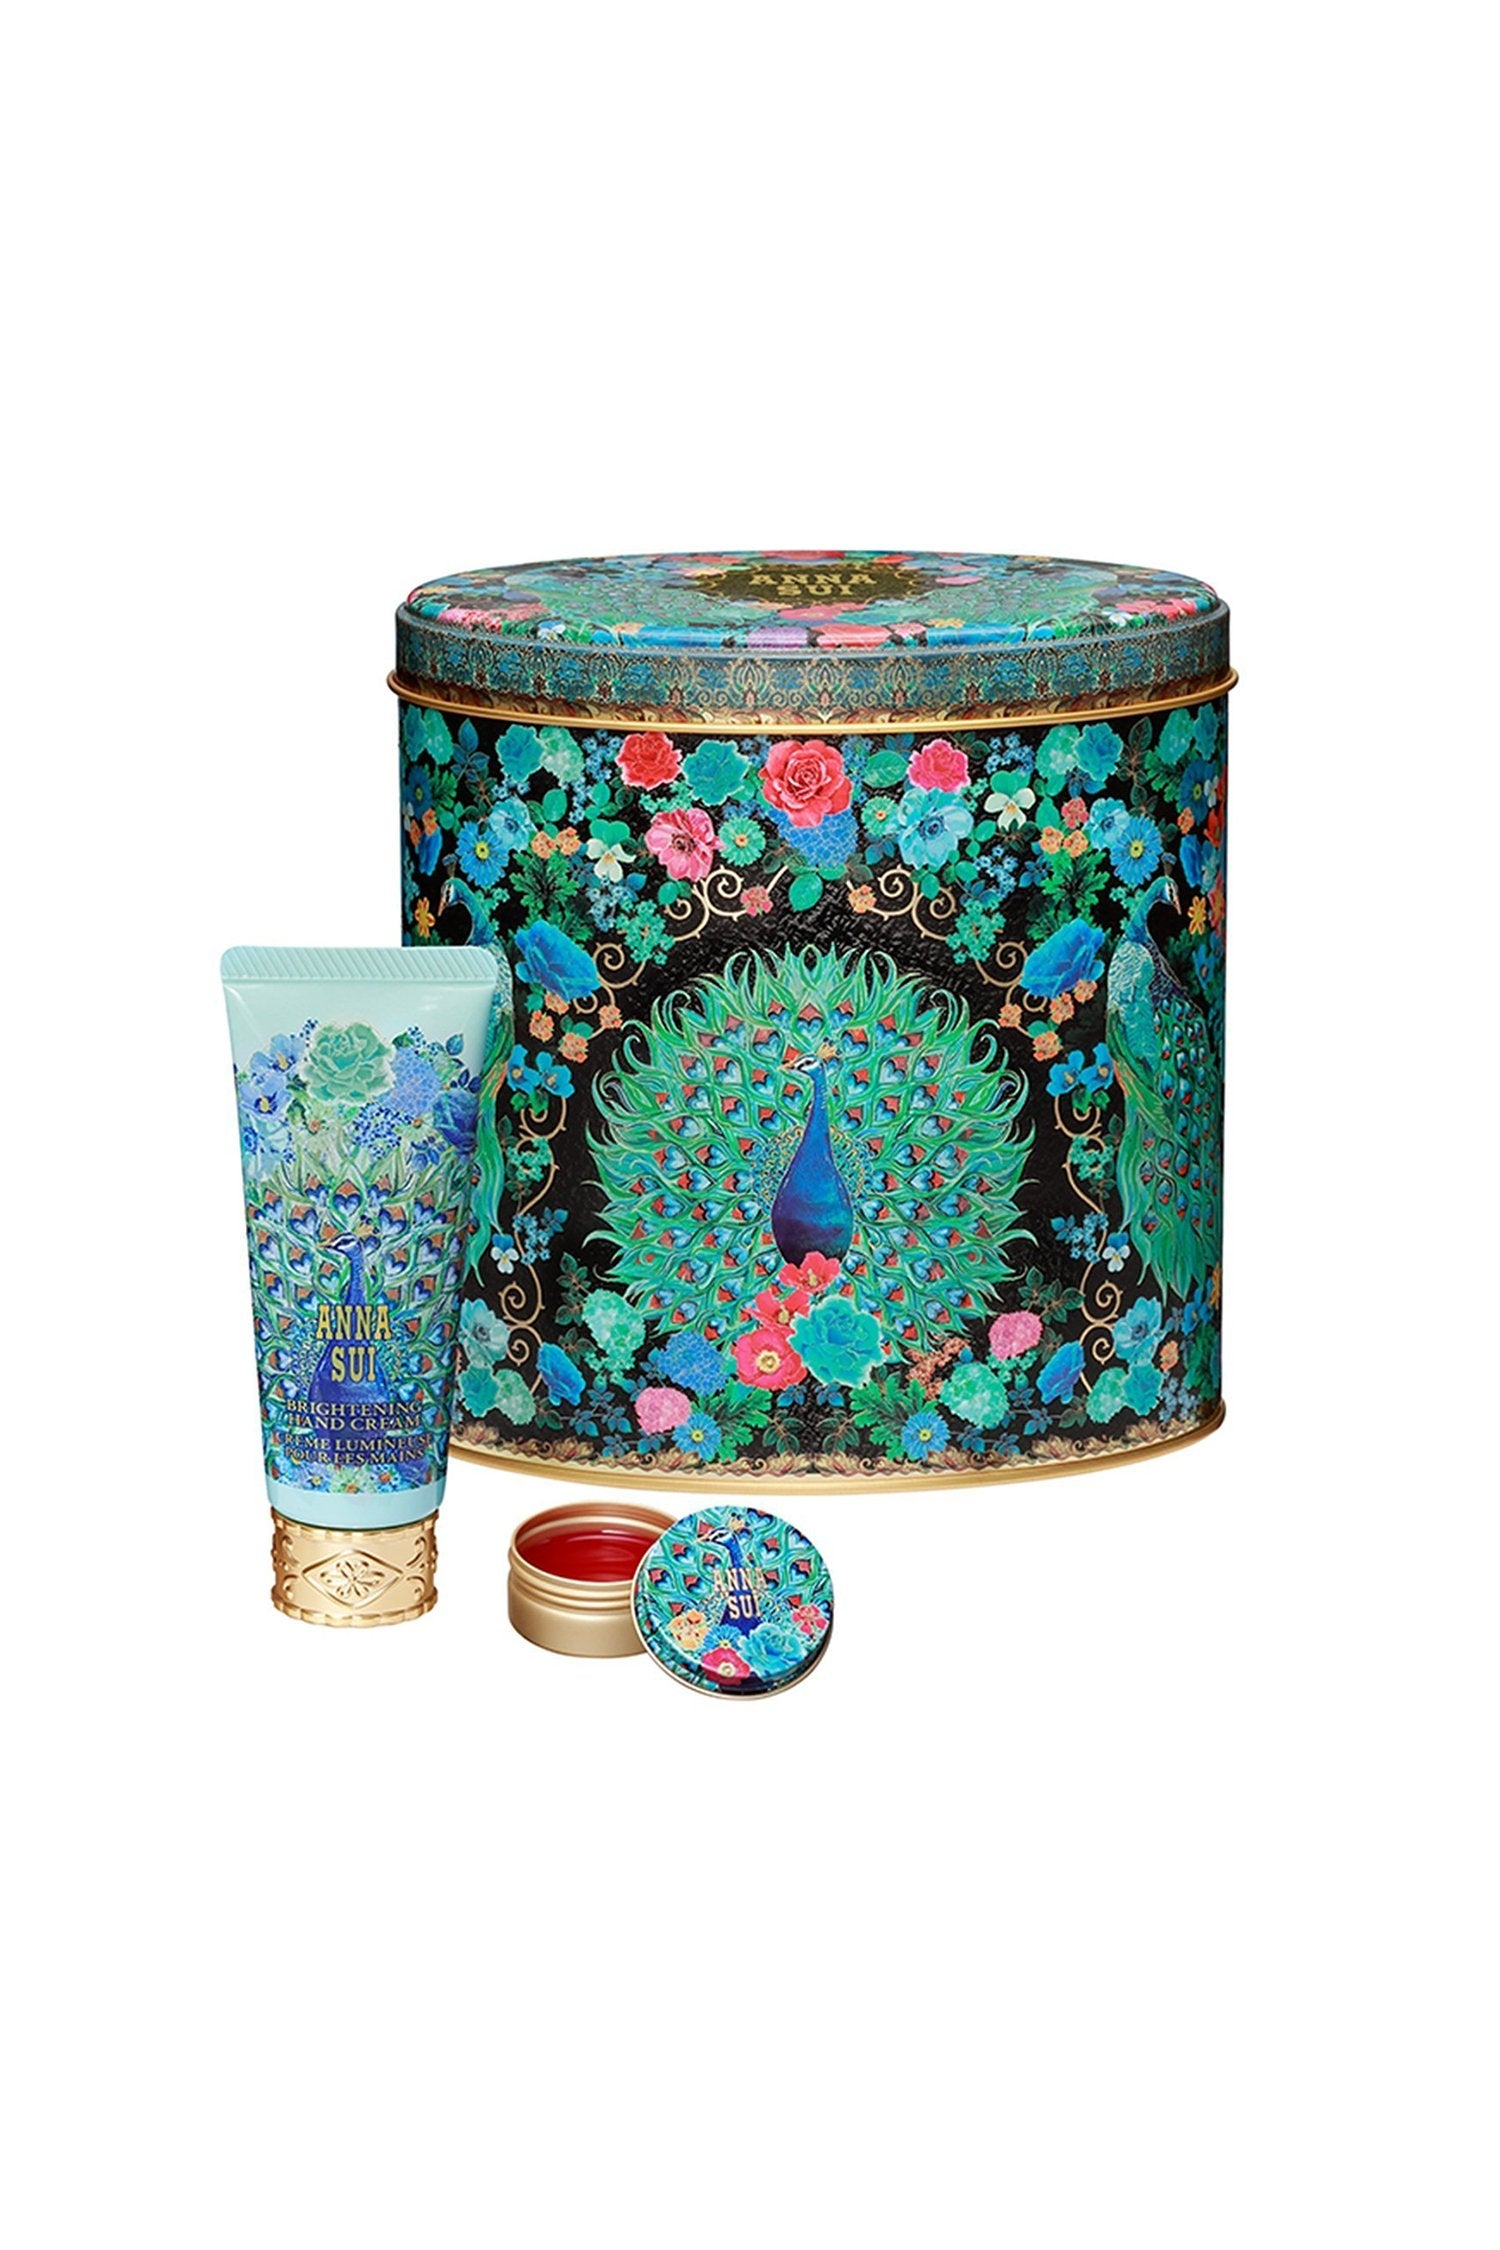 New: Peacock Beauty Box